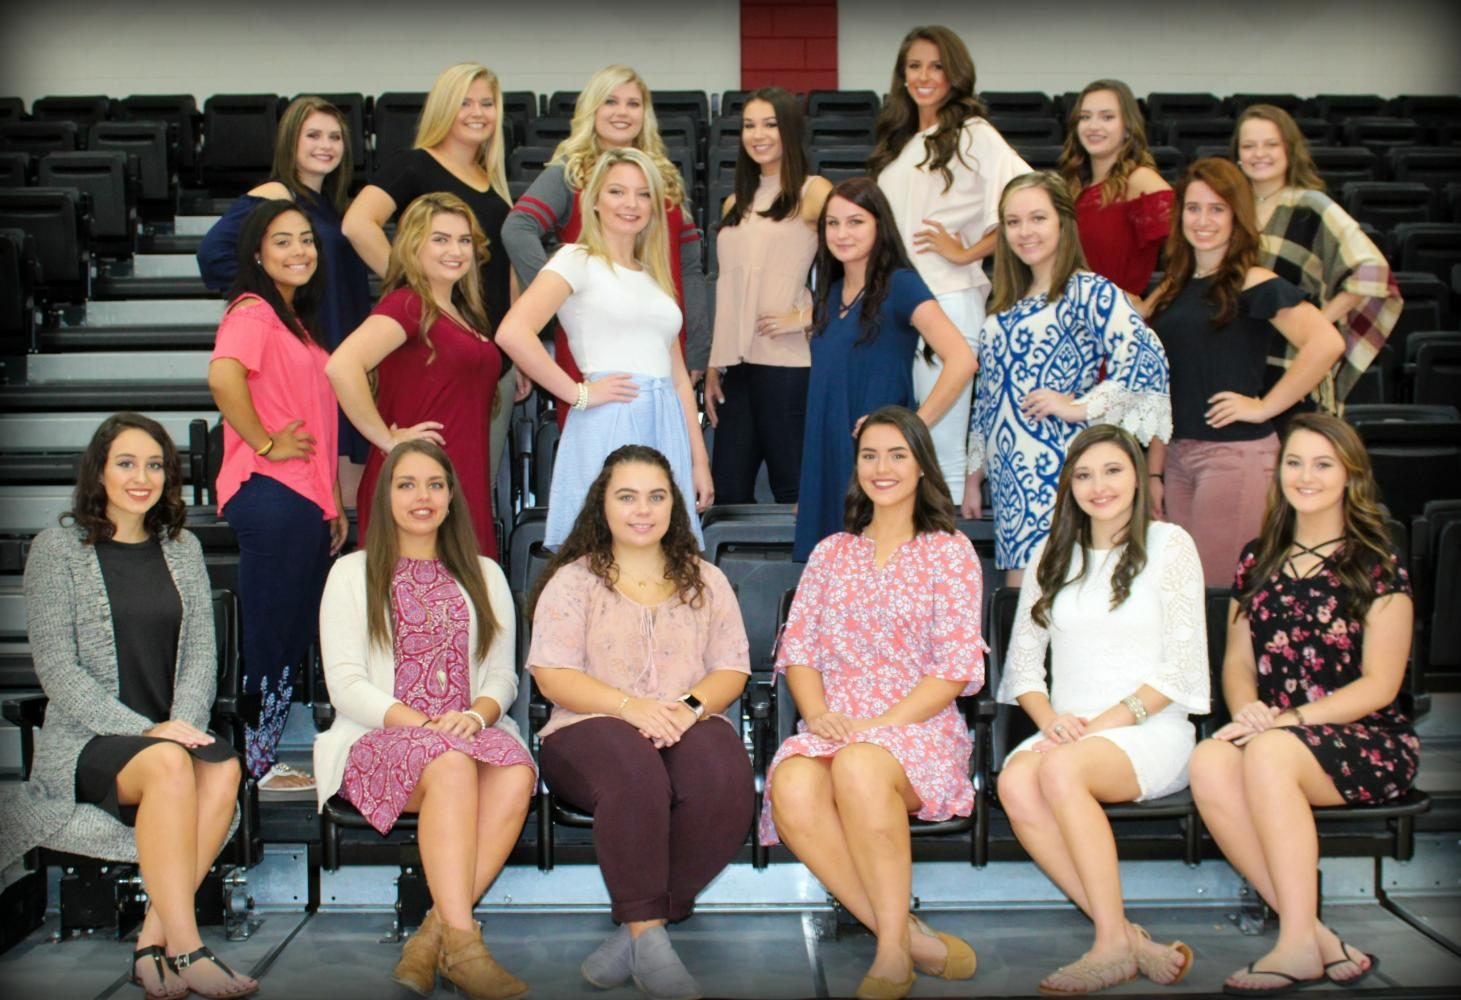 The Harlan County HIgh School homecoming queen will be crowned in ceremonies before Fridays game against Knox Central. Senior candidates include, from left, front row: Dacey Bailey, Chelsey Caldwell, Regan Caudill, Allison Cook, Shawnee Cress and Emily Eldridge; middle row: Kali King, Kerstin Perkins, Brooke Hensley, Hannah Housley, Breanna Madison and Kailee Ewald; back row: Grayson Raleigh, Taylor M. Johnson, Chelsey Noe, Brooke Pace, Blair Green, Karyssa Lamb and Brianna Smith; not pictured: Megan Witt.